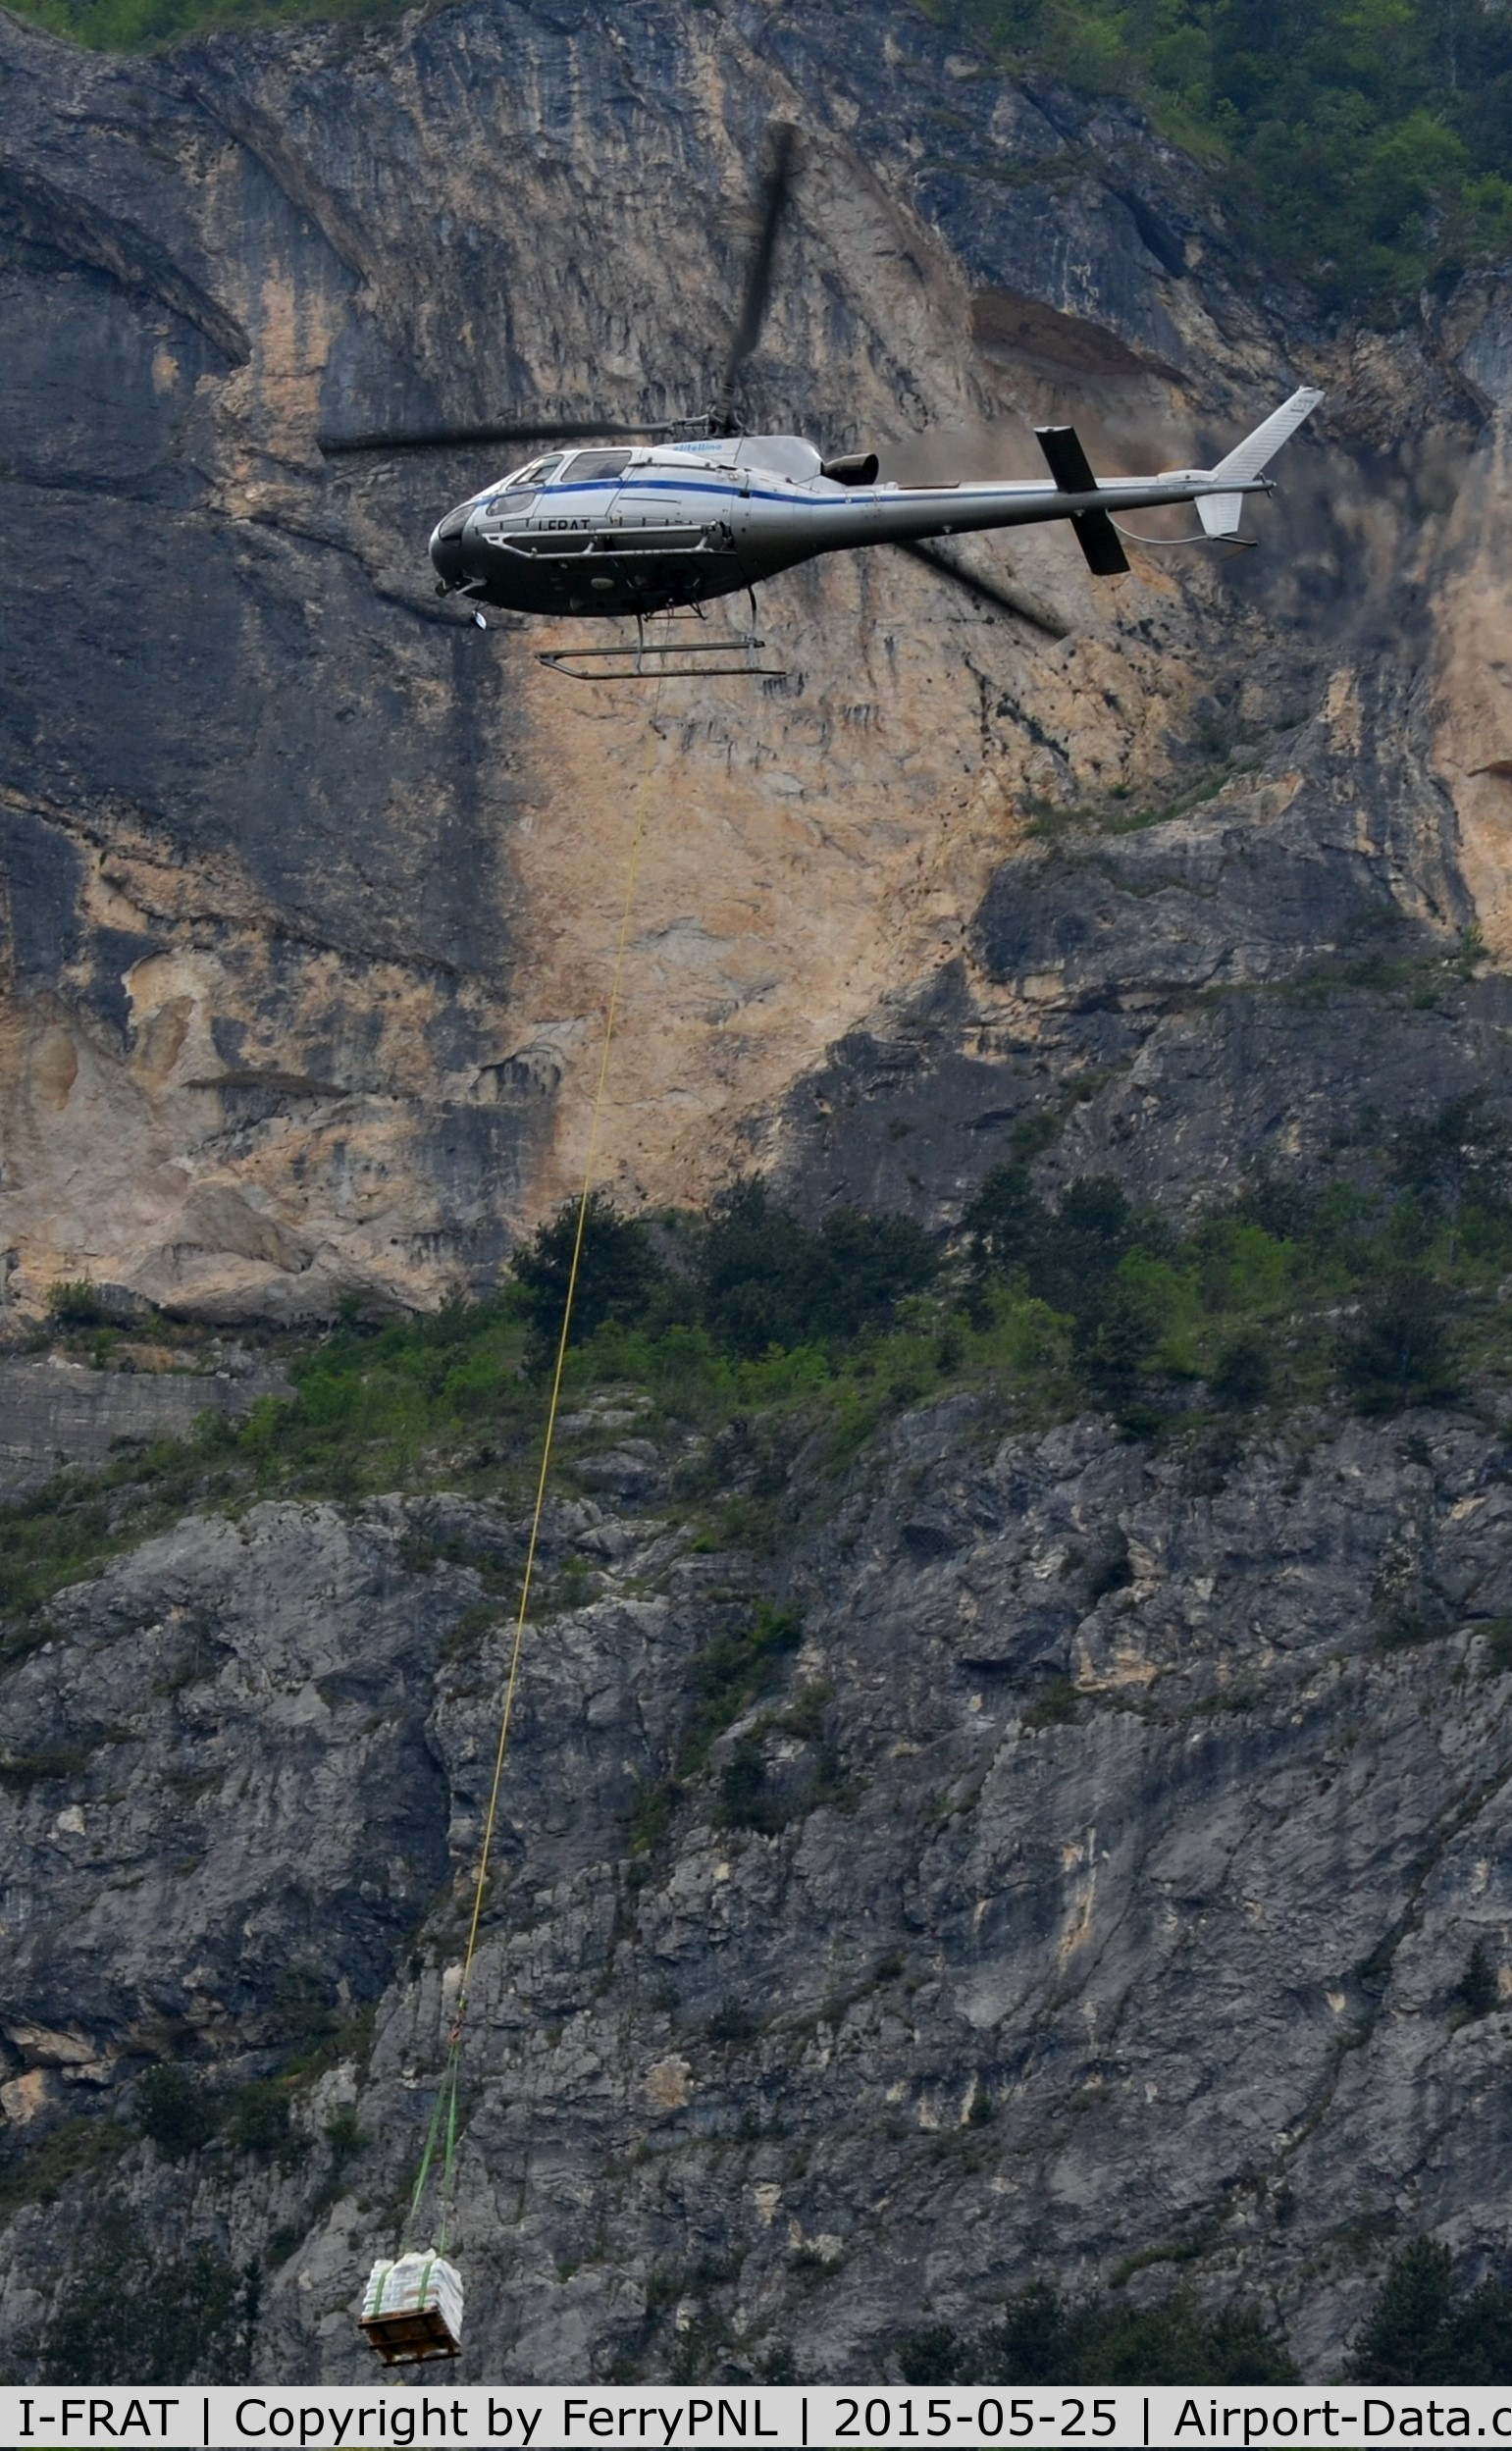 I-FRAT, Eurocopter AS-350B-3 Ecureuil C/N 4720, Elitellina AS350 with its load close to the mountain.